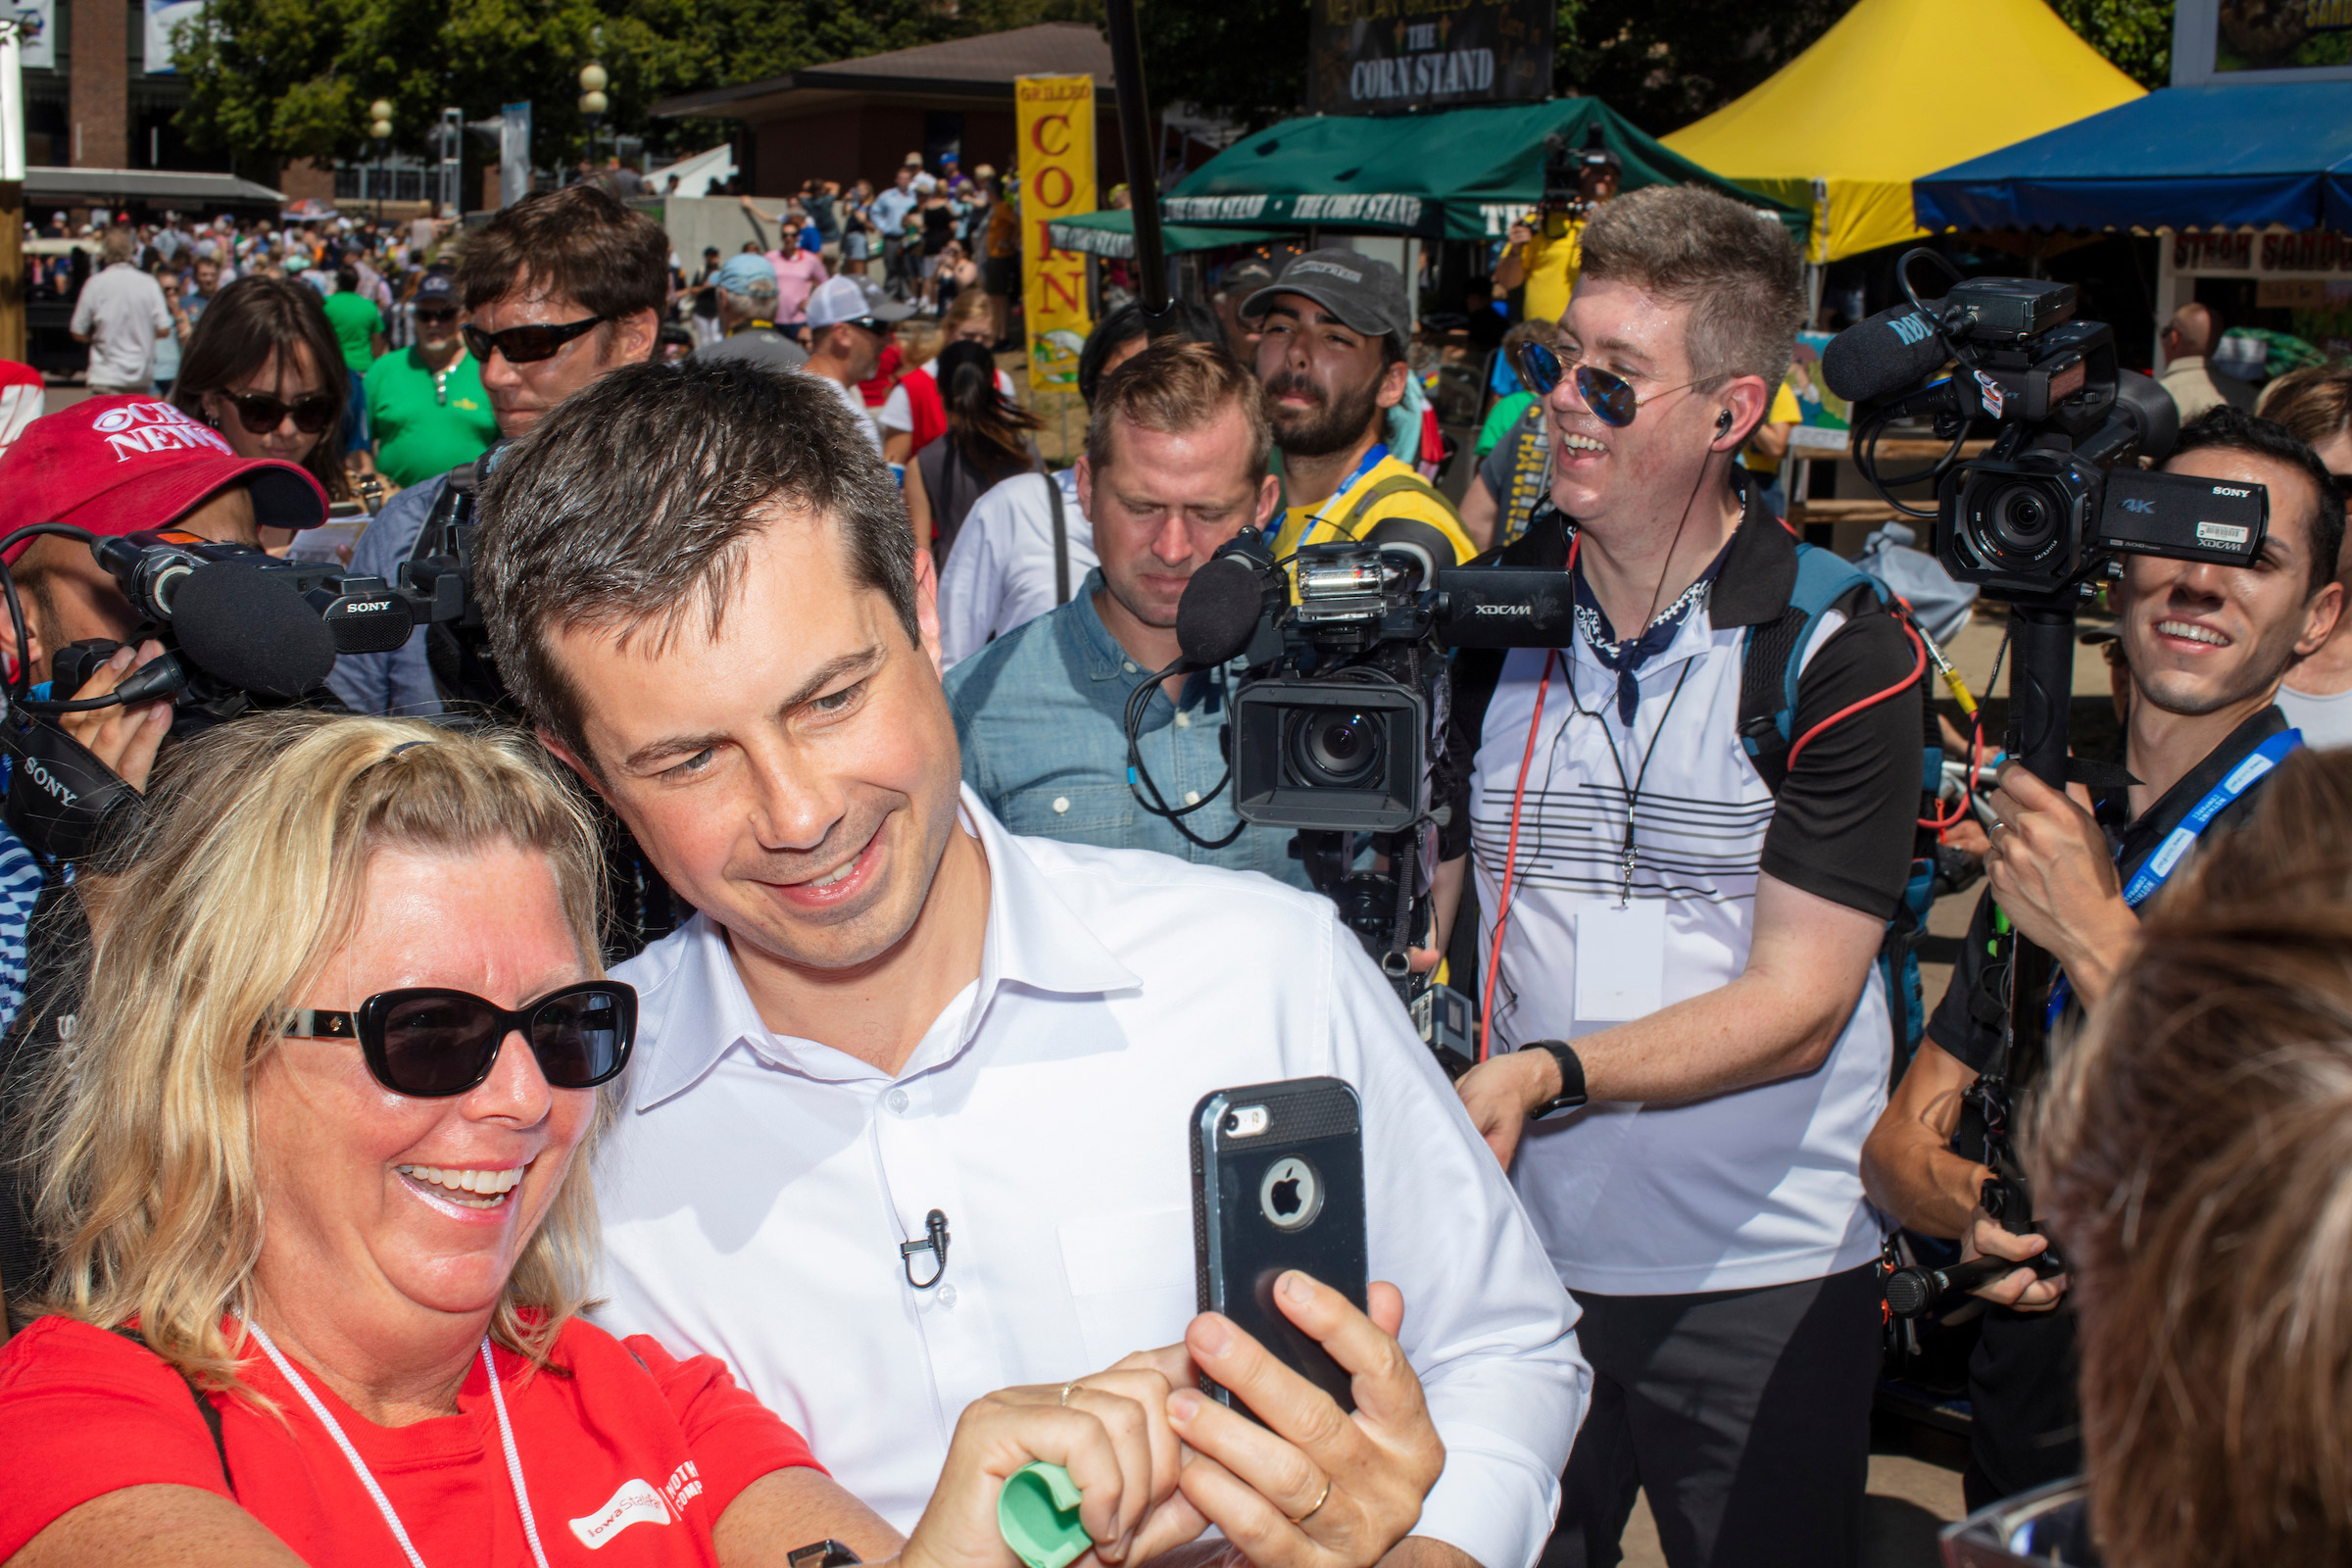 South Bend mayor and Democratic presidential candidate Pete Buttigieg greets people as he walks through the Iowa State Fair on Aug. 13.